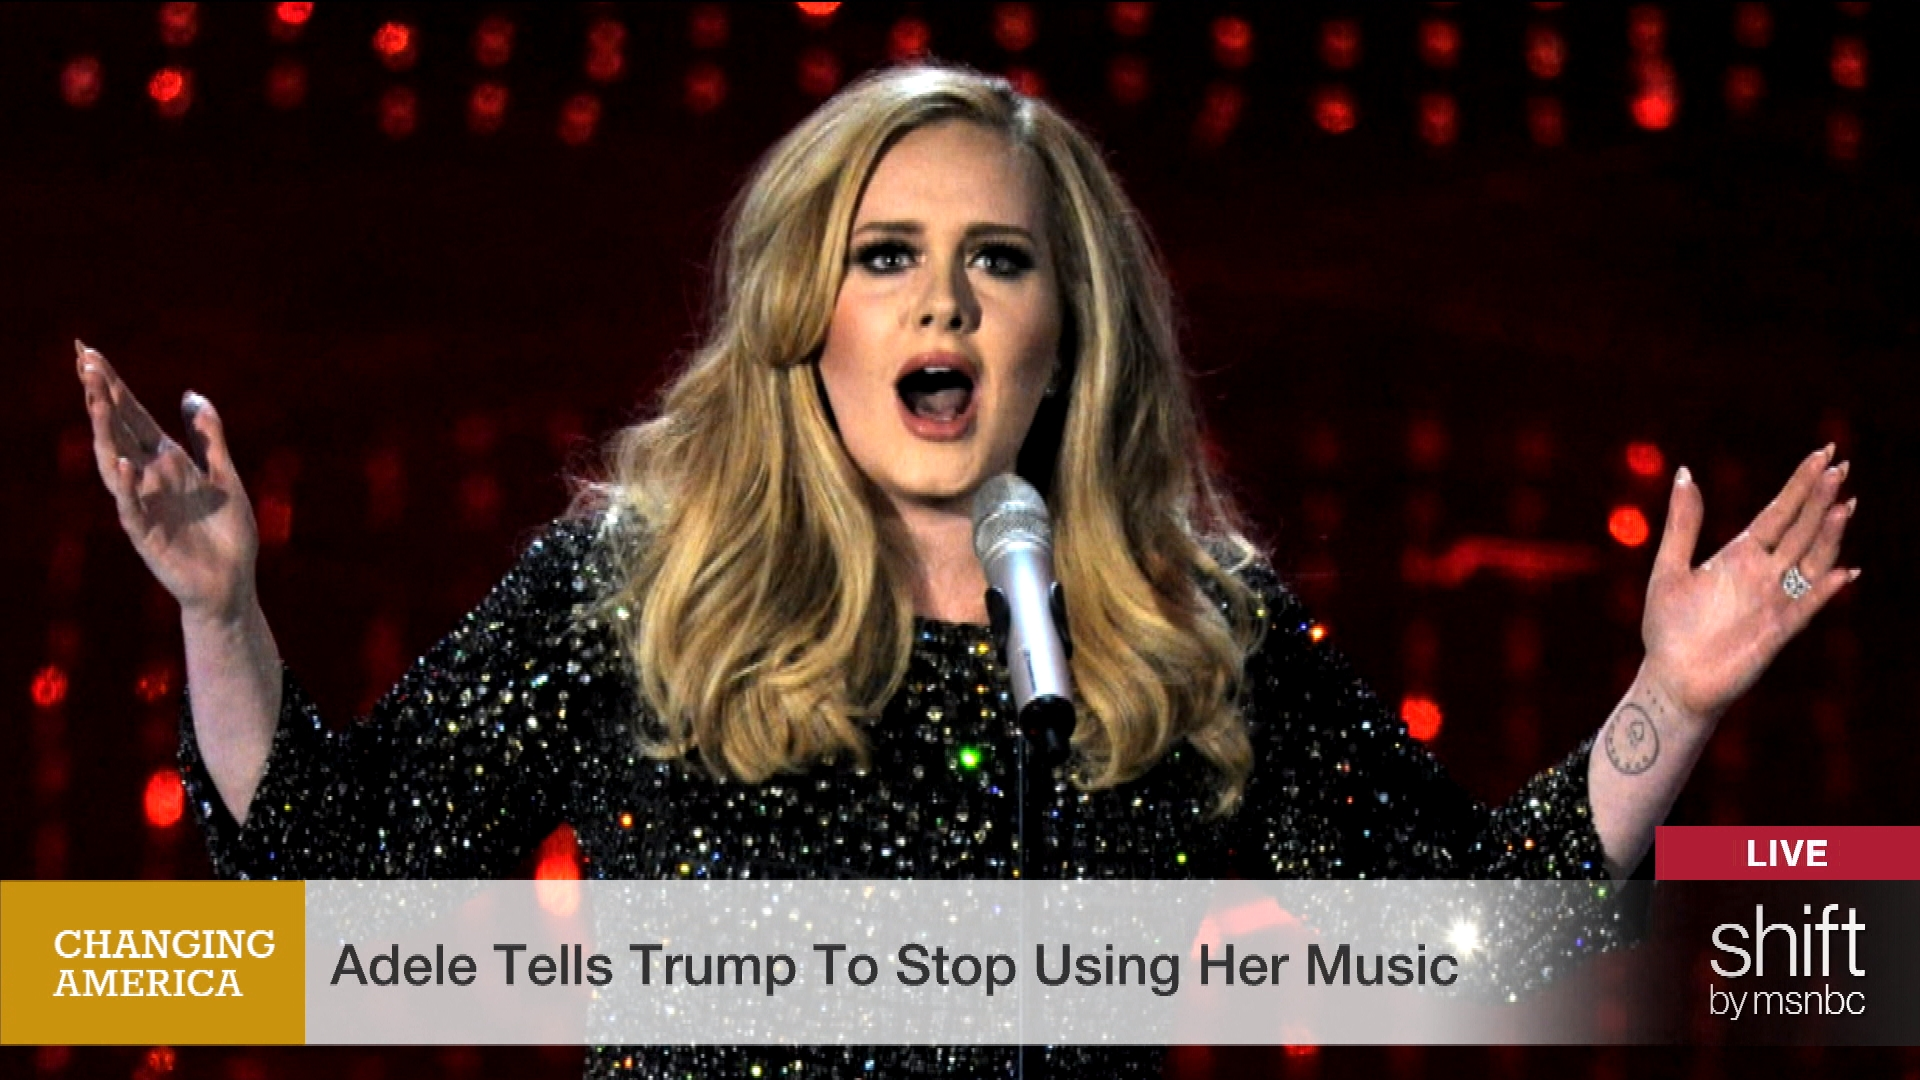 Adele doesn't want the GOP to use her songs